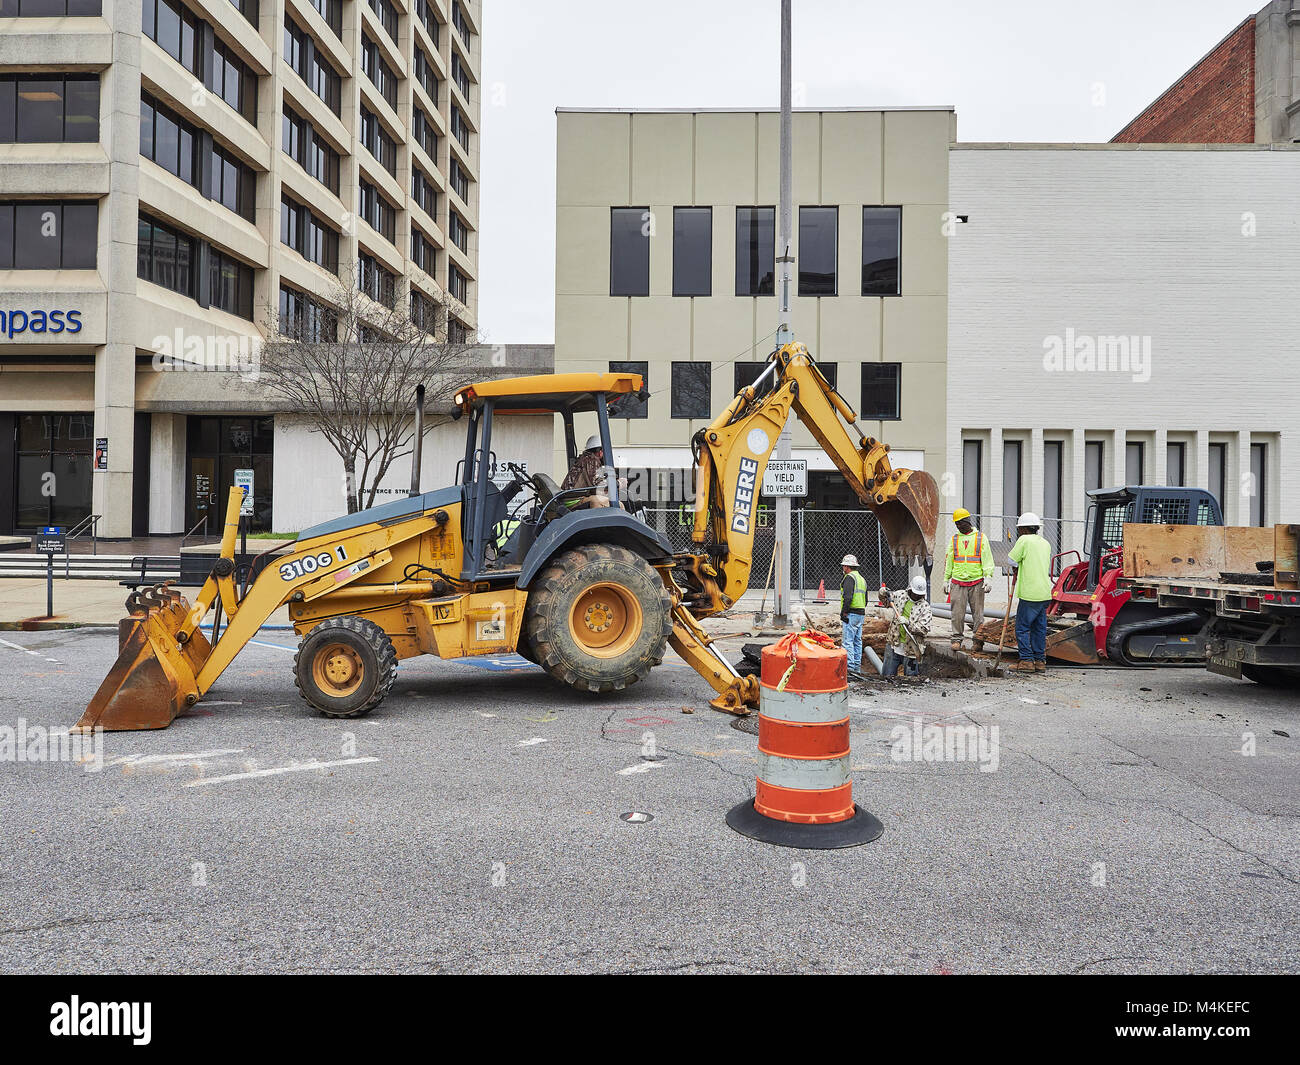 Utility work being done under a paved city street involving a back hoe front loader and several workers in Montgomery - Stock Image